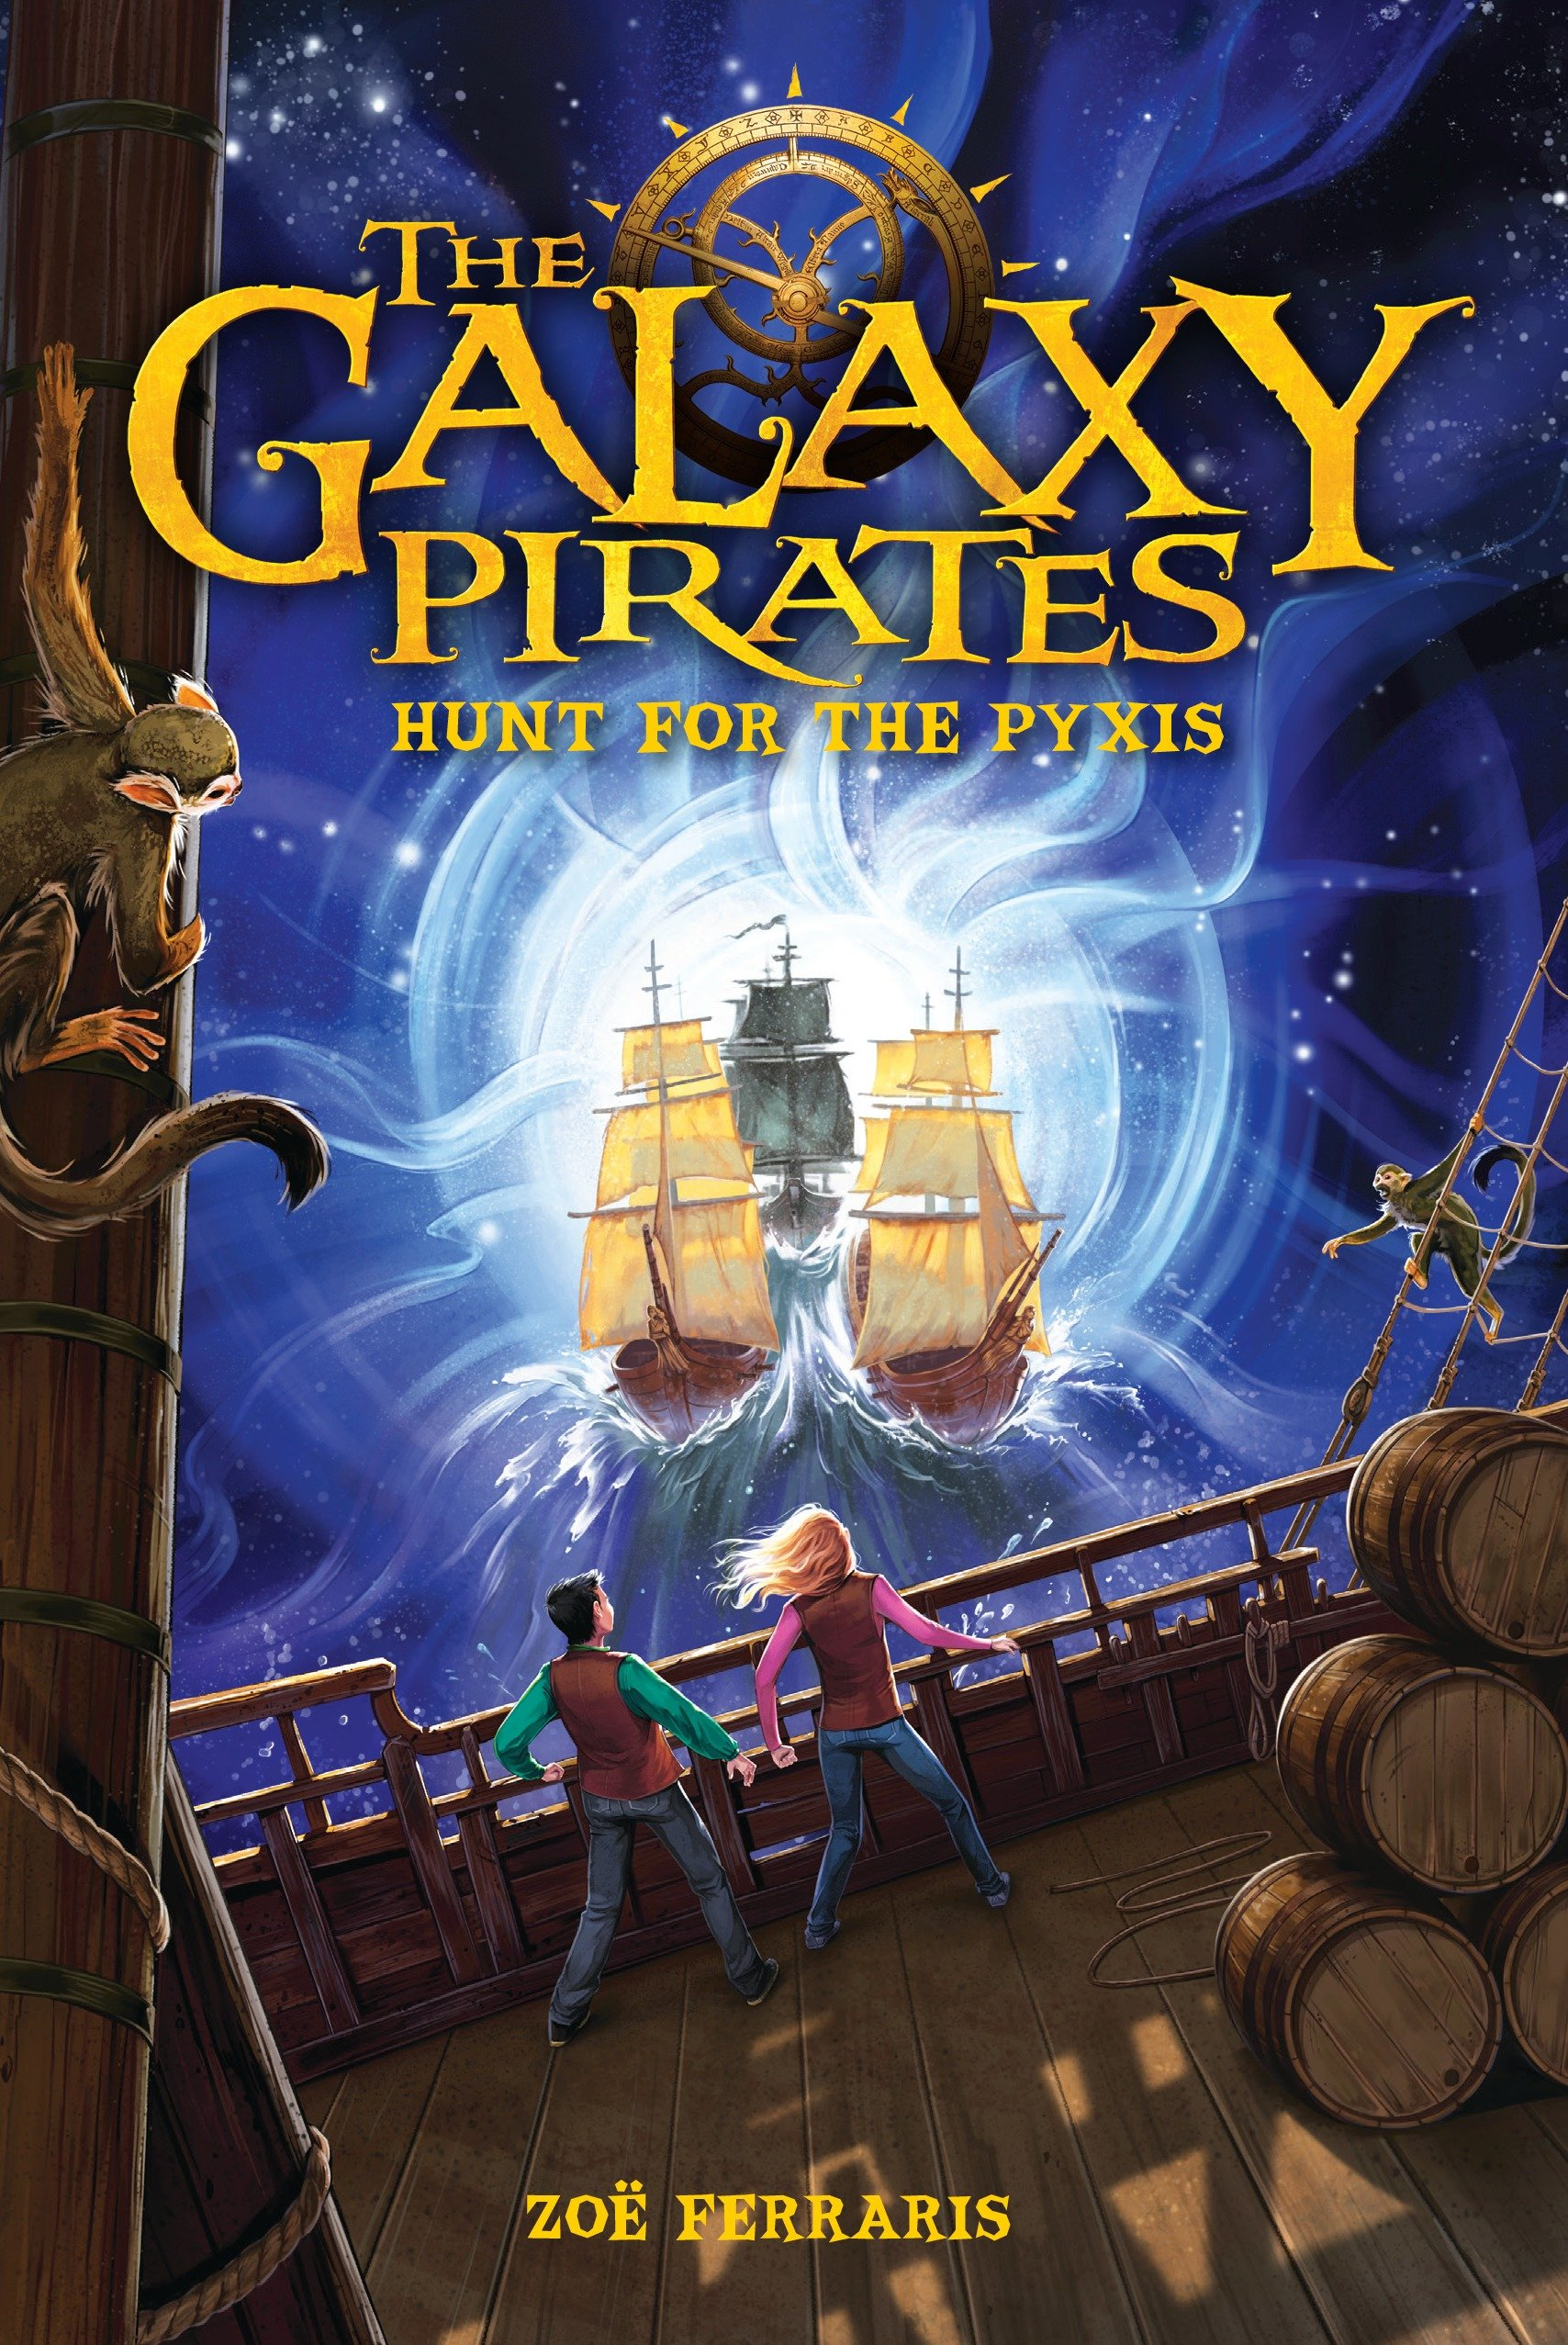 The galaxy pirates hunt for the Pyxis cover image